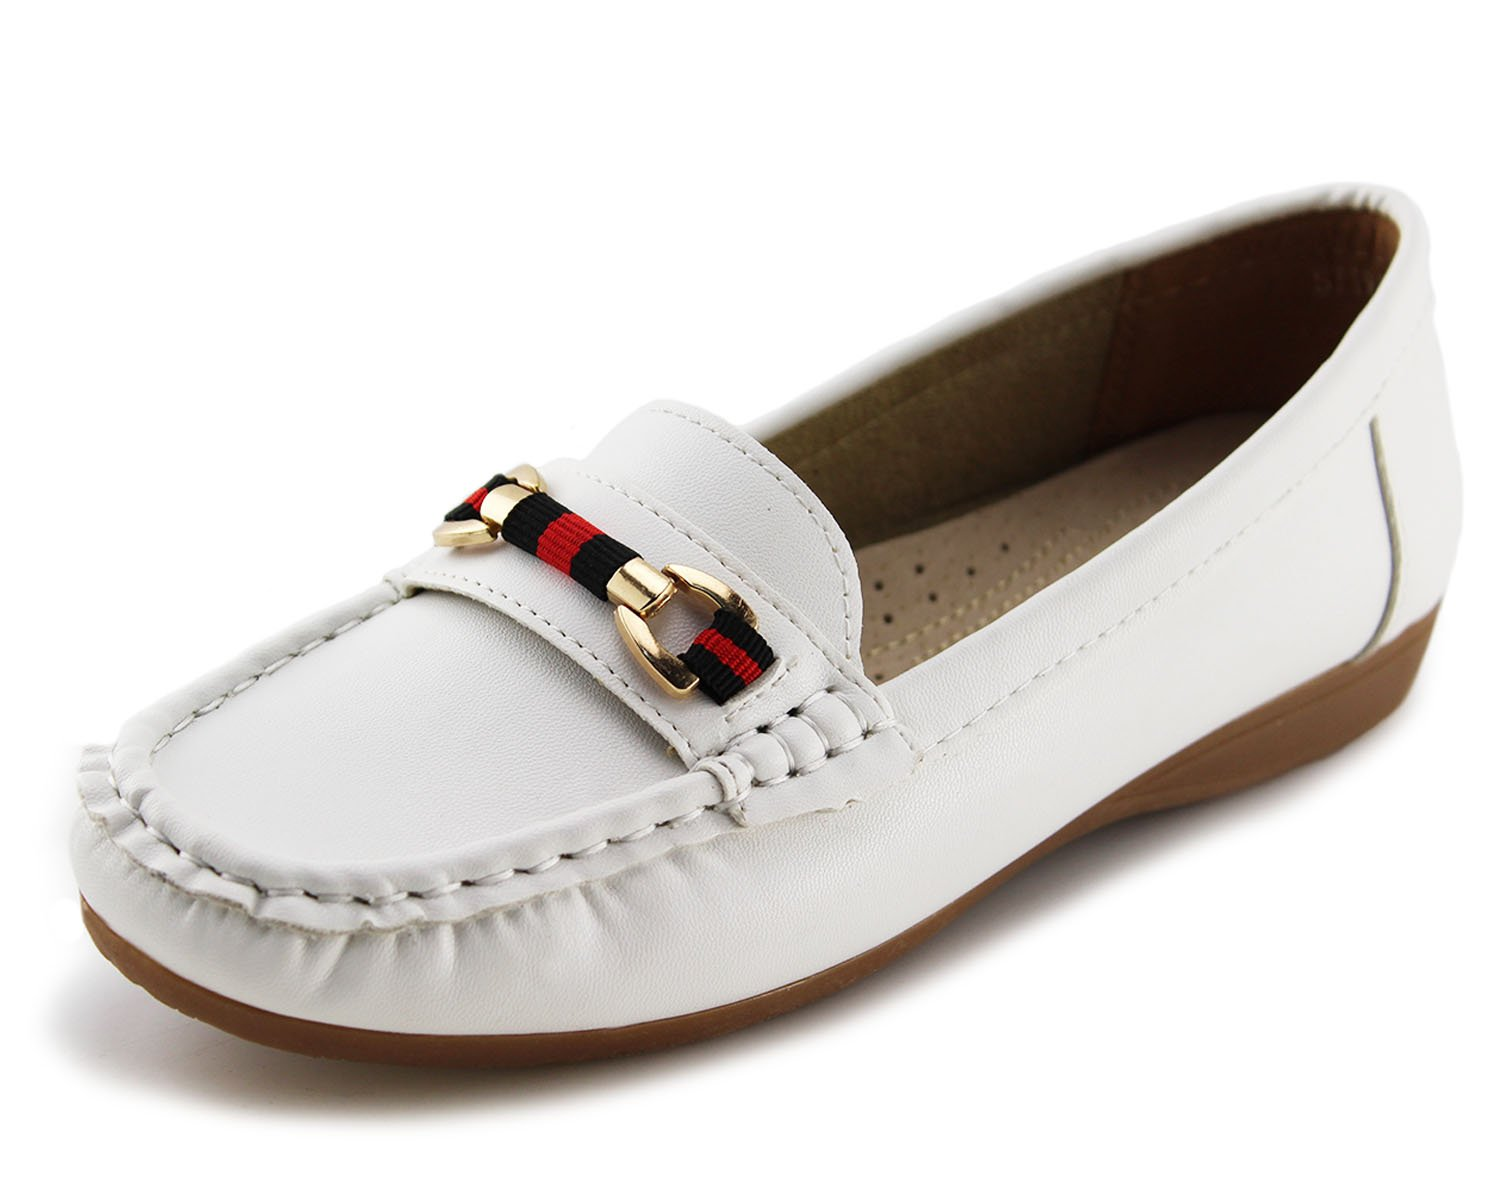 Jabasic Women's Slip-on Loafers Flat Casual Driving Shoes(7.5, White-1)